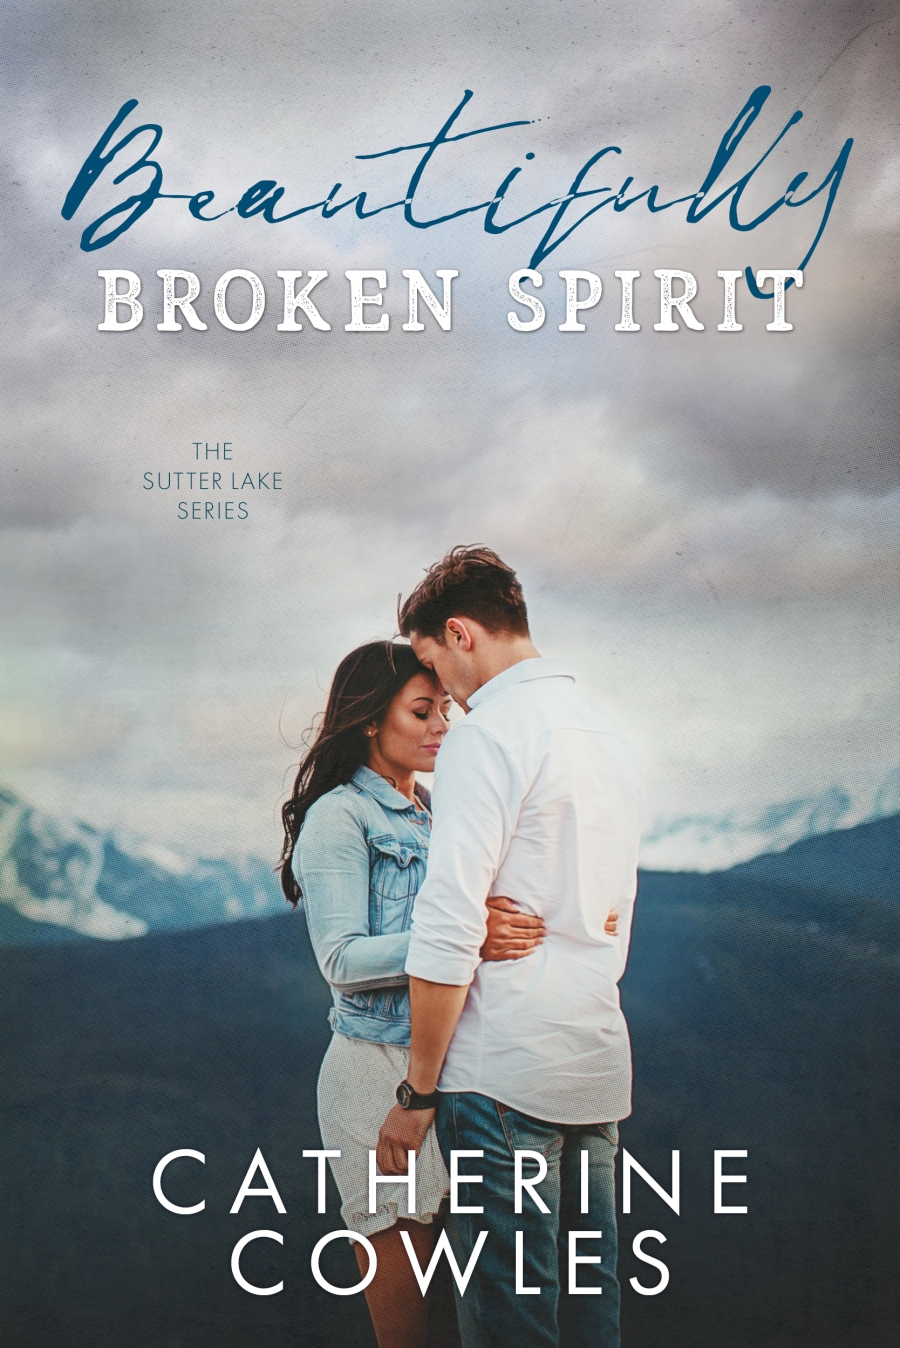 Beautifully Broken Spirit AMAZON